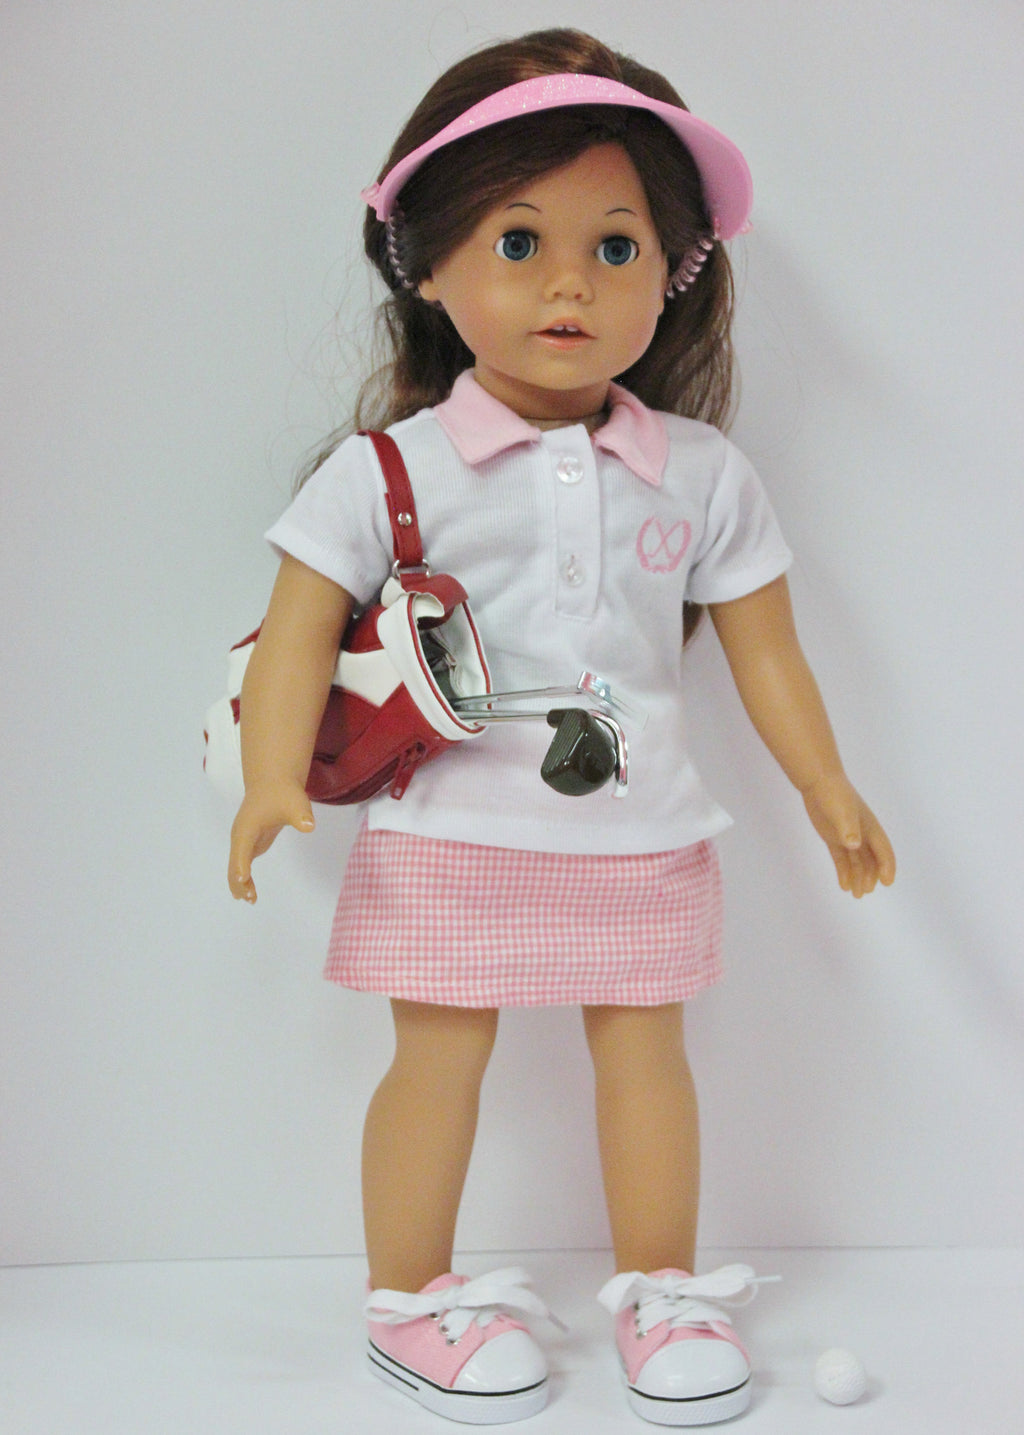 Pink Golf Outfit with Clubs & Bag